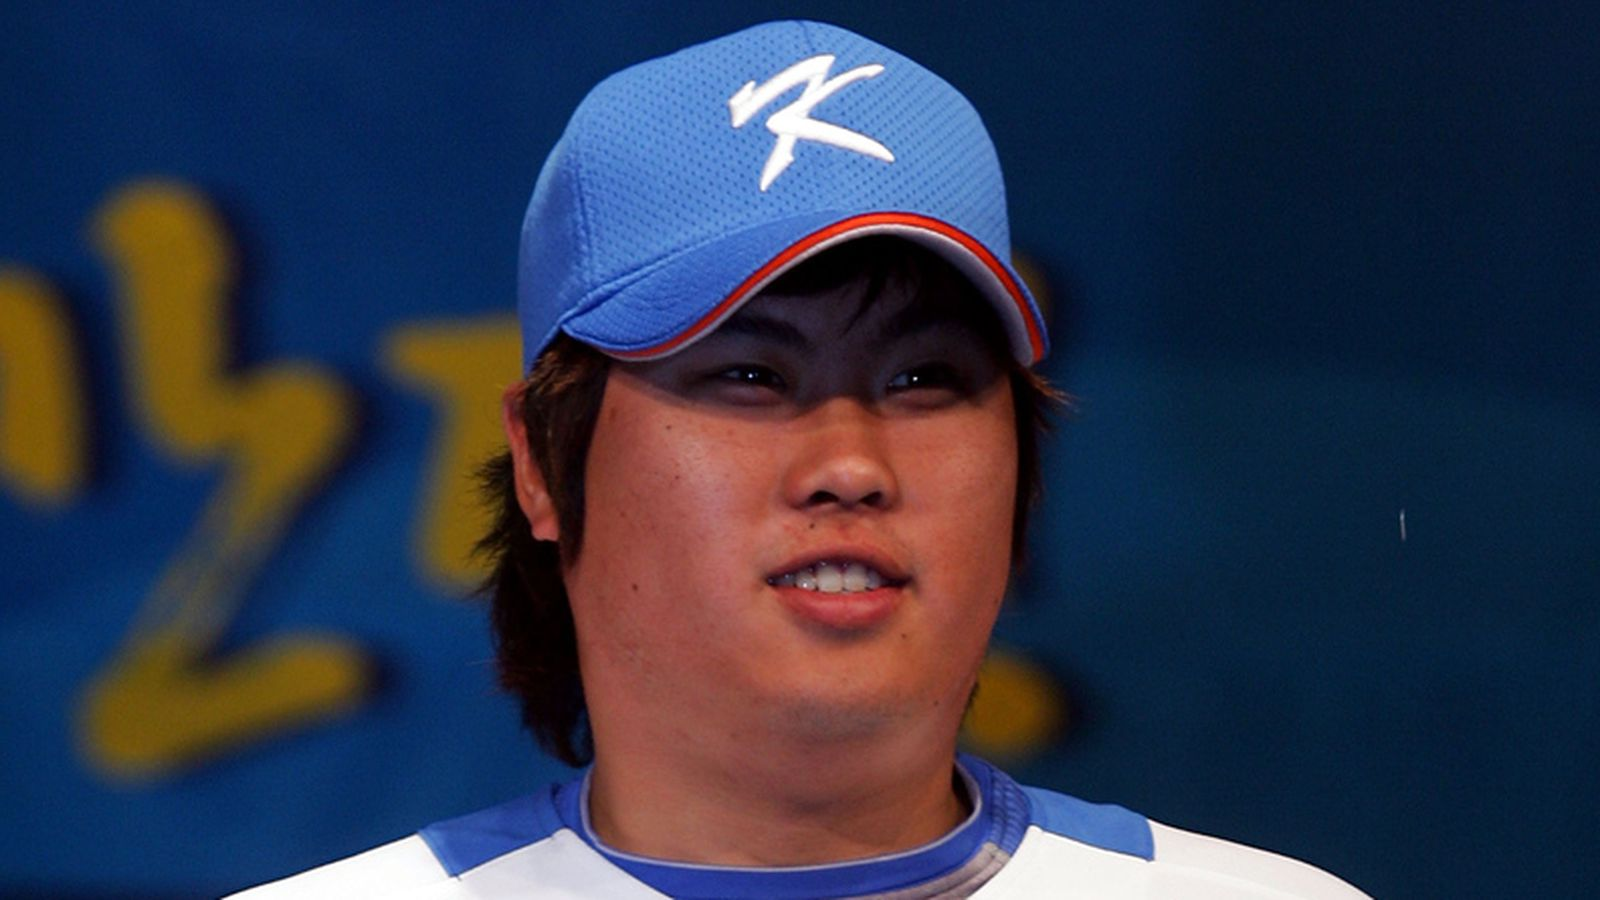 Ryu Hyun Jin Wallpaper Dodgers Sign Hyun-jin Ryu